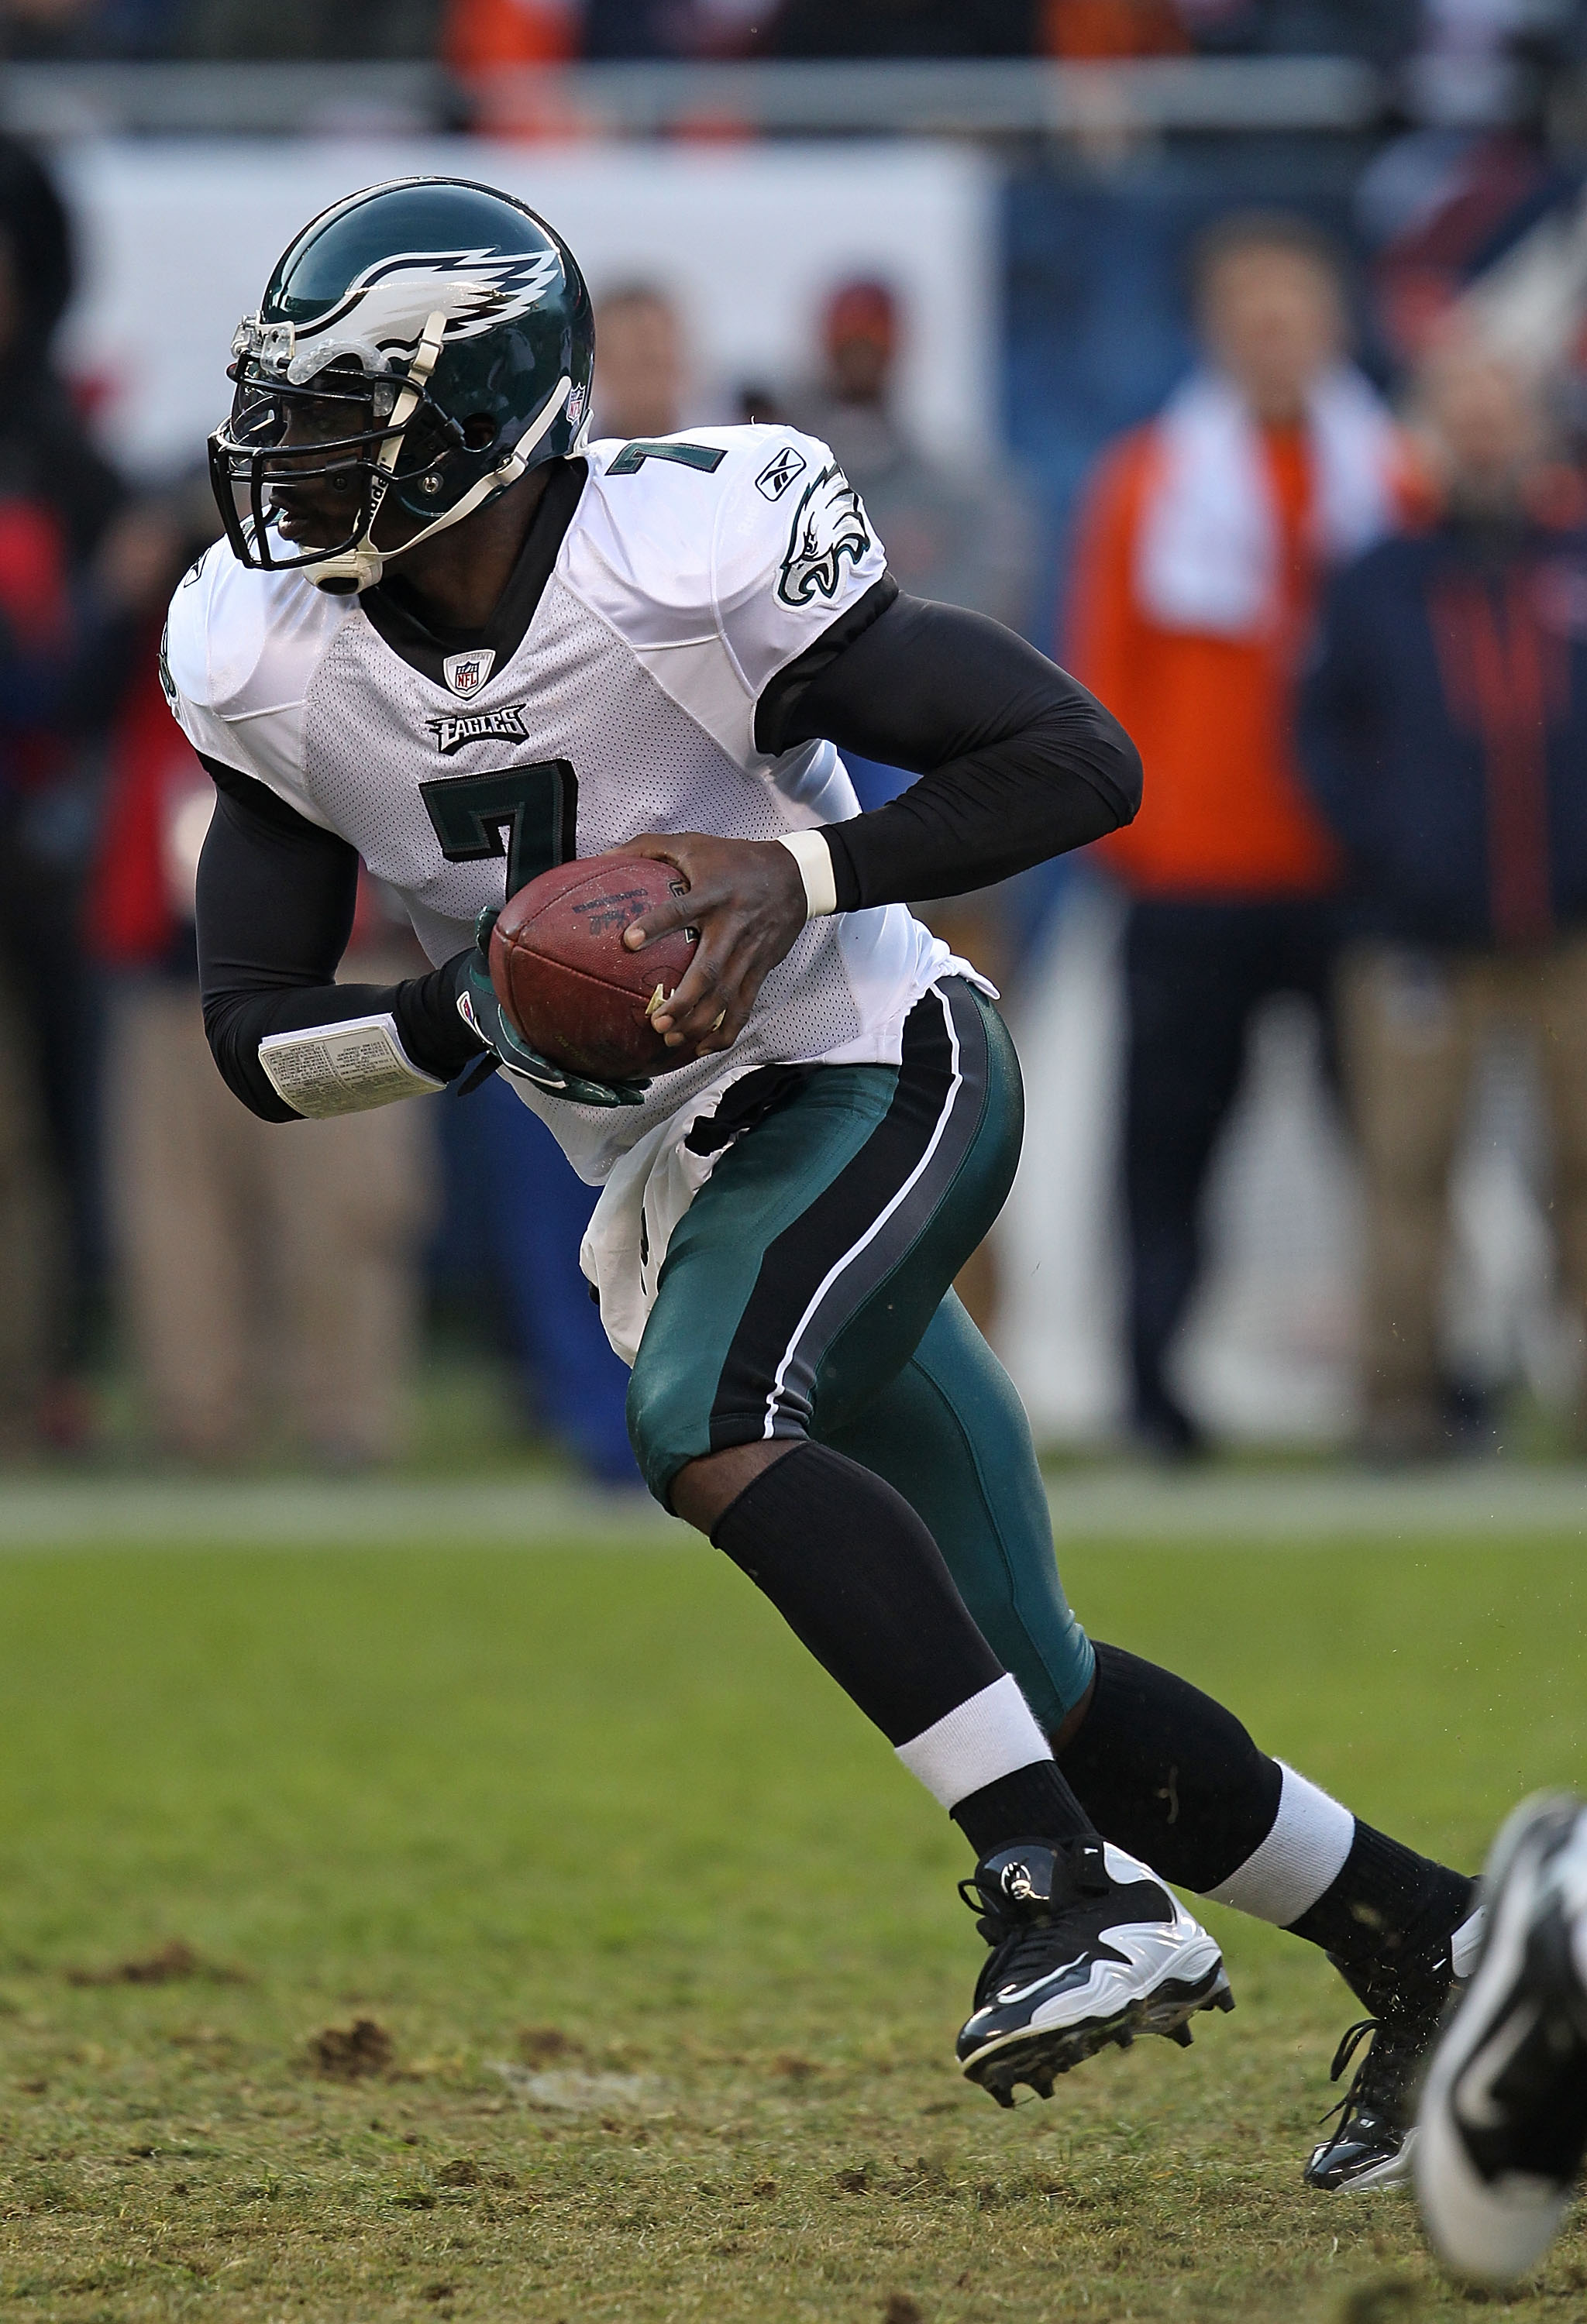 CHICAGO - NOVEMBER 28: Michael Vick #7 of the Philadelphia Eagles runs against the Chicago Bears trail the play at Soldier Field on November 28, 2010 in Chicago, Illinois. The Bears defeated the Eagles 31-26. (Photo by Jonathan Daniel/Getty Images)